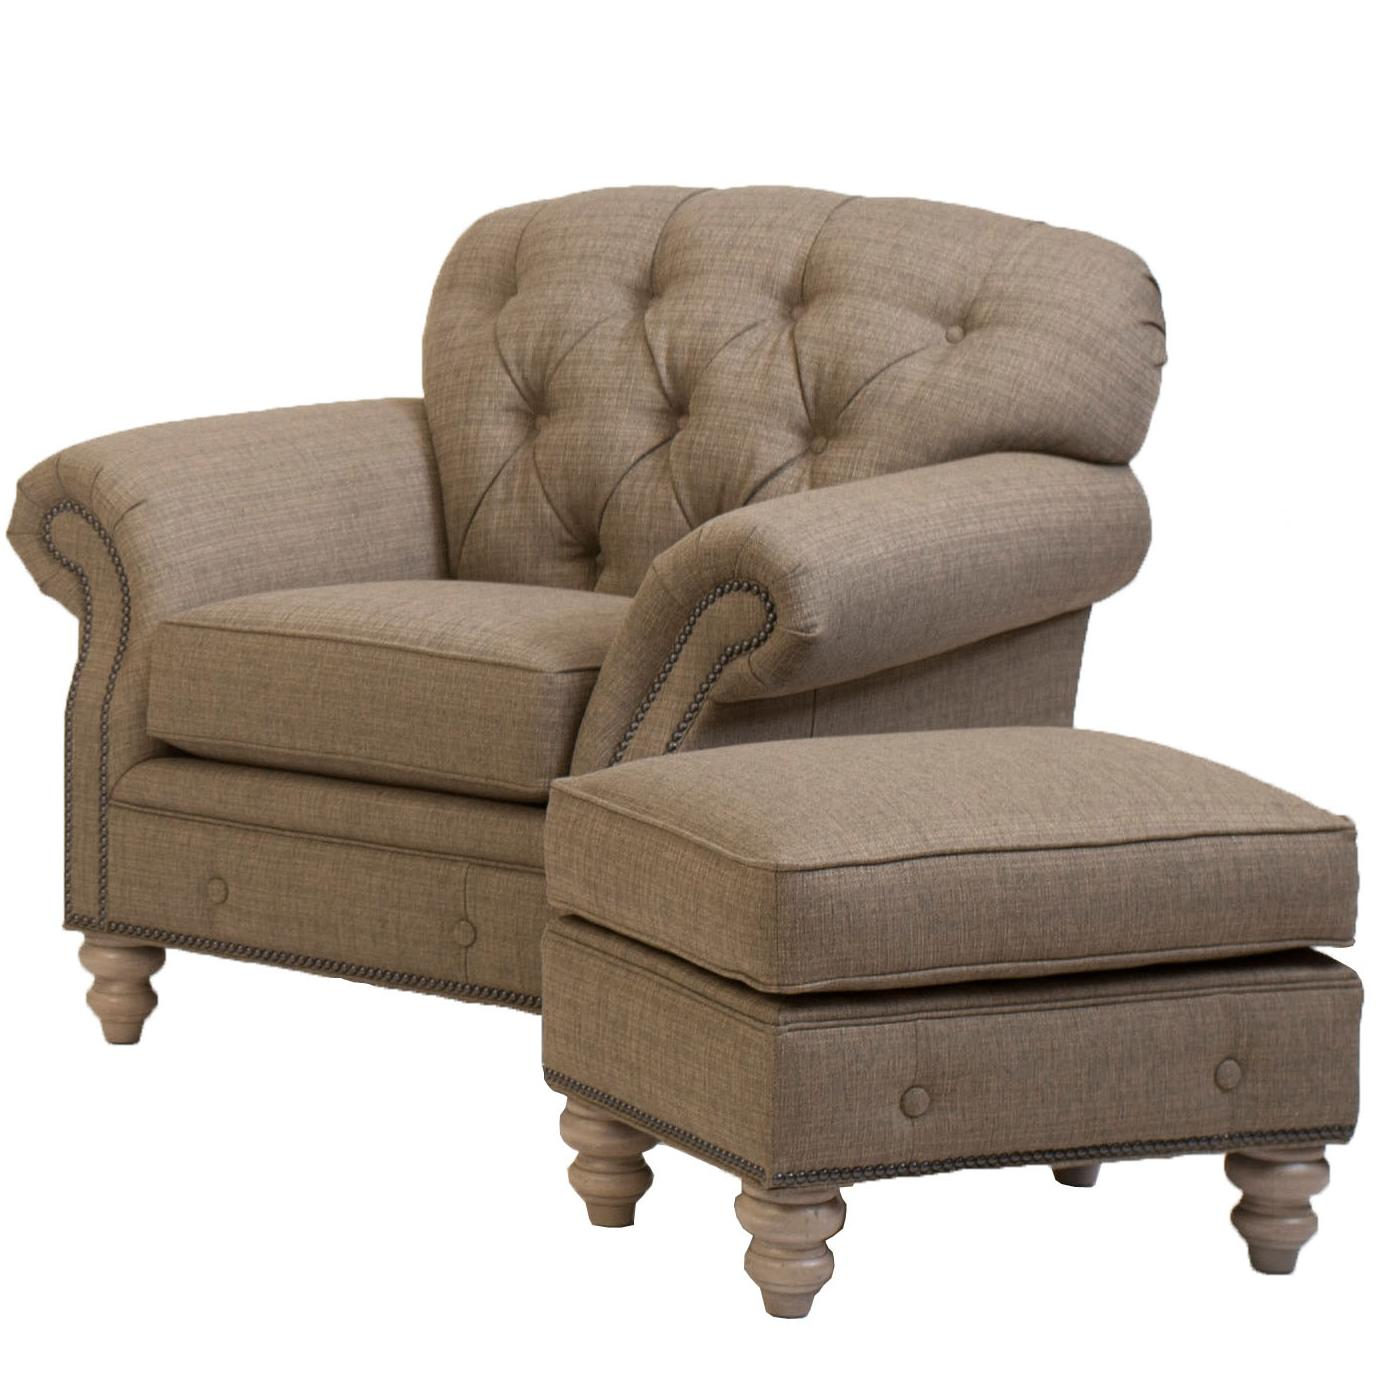 Traditional button tufted chair and ottoman combination by for Chair ottoman